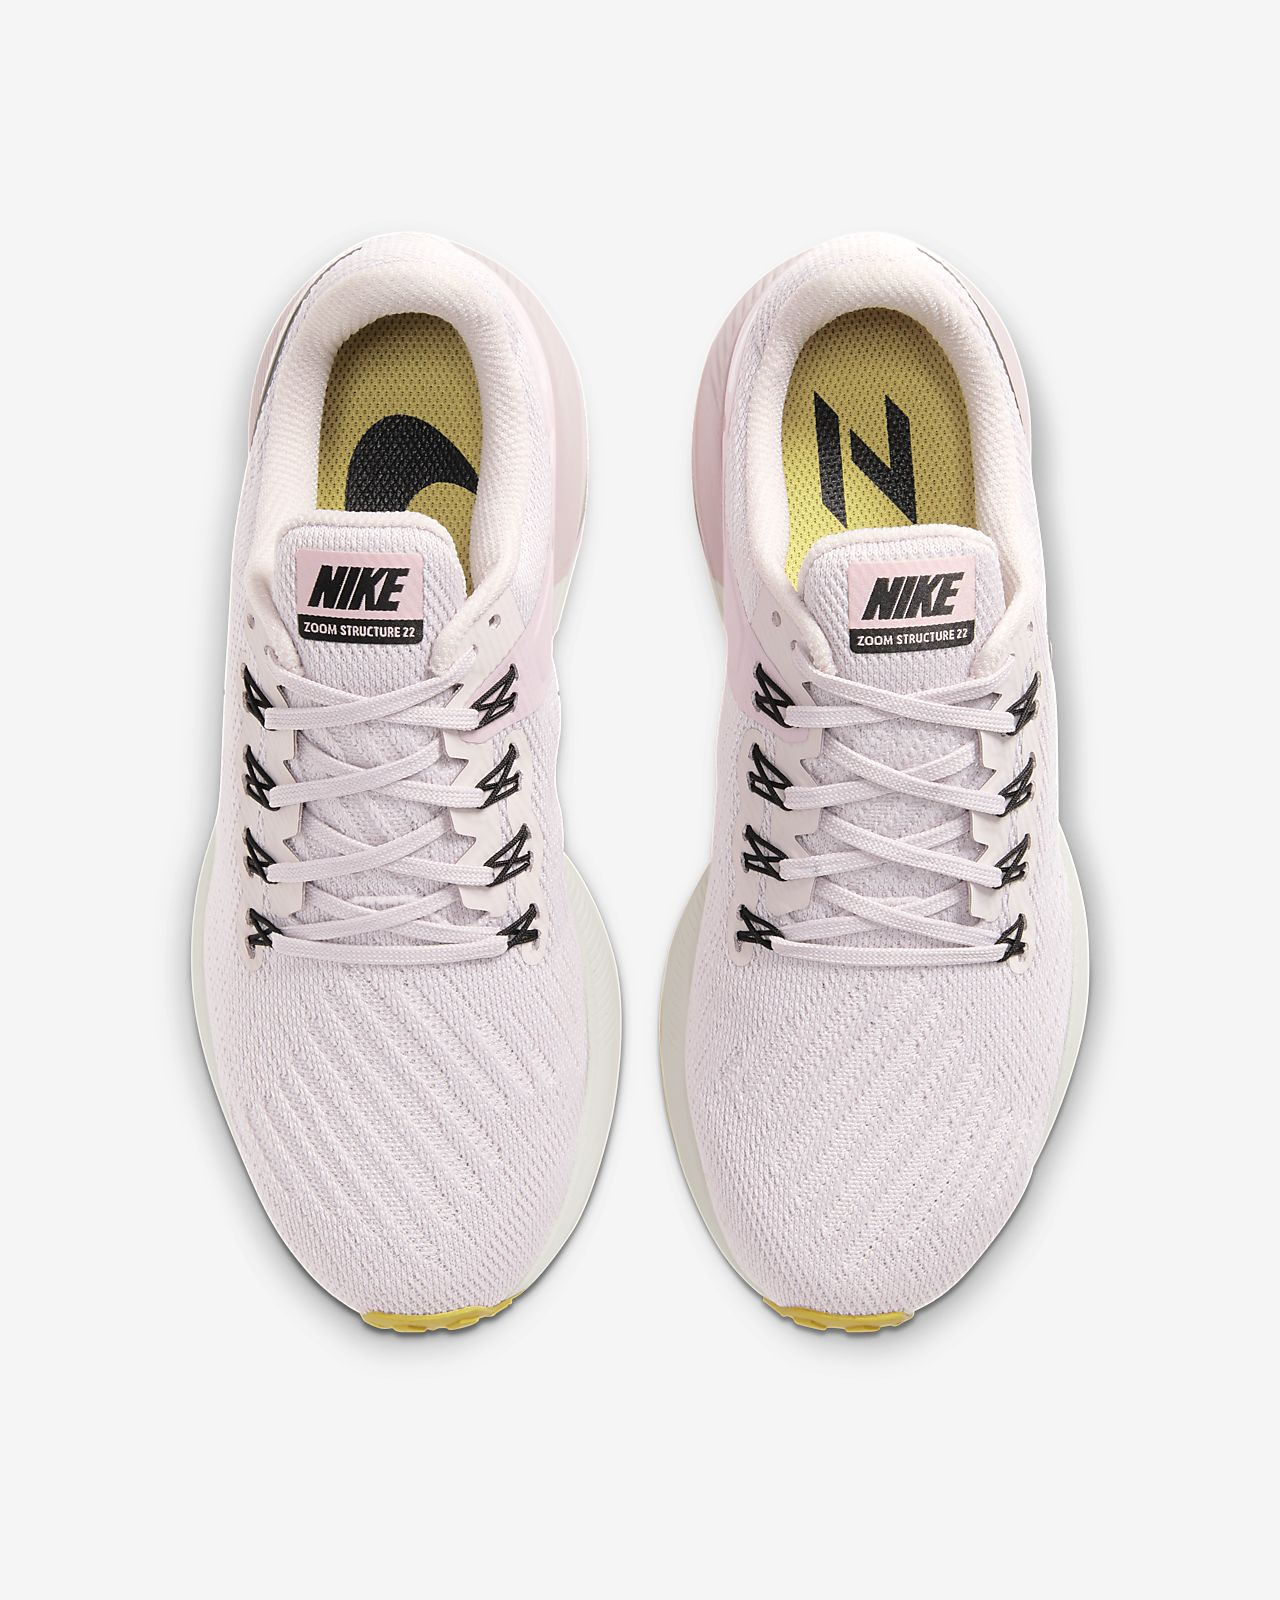 Nike Gym Shoes Womens Zoom Structure 22 Women's Air 19 Avis